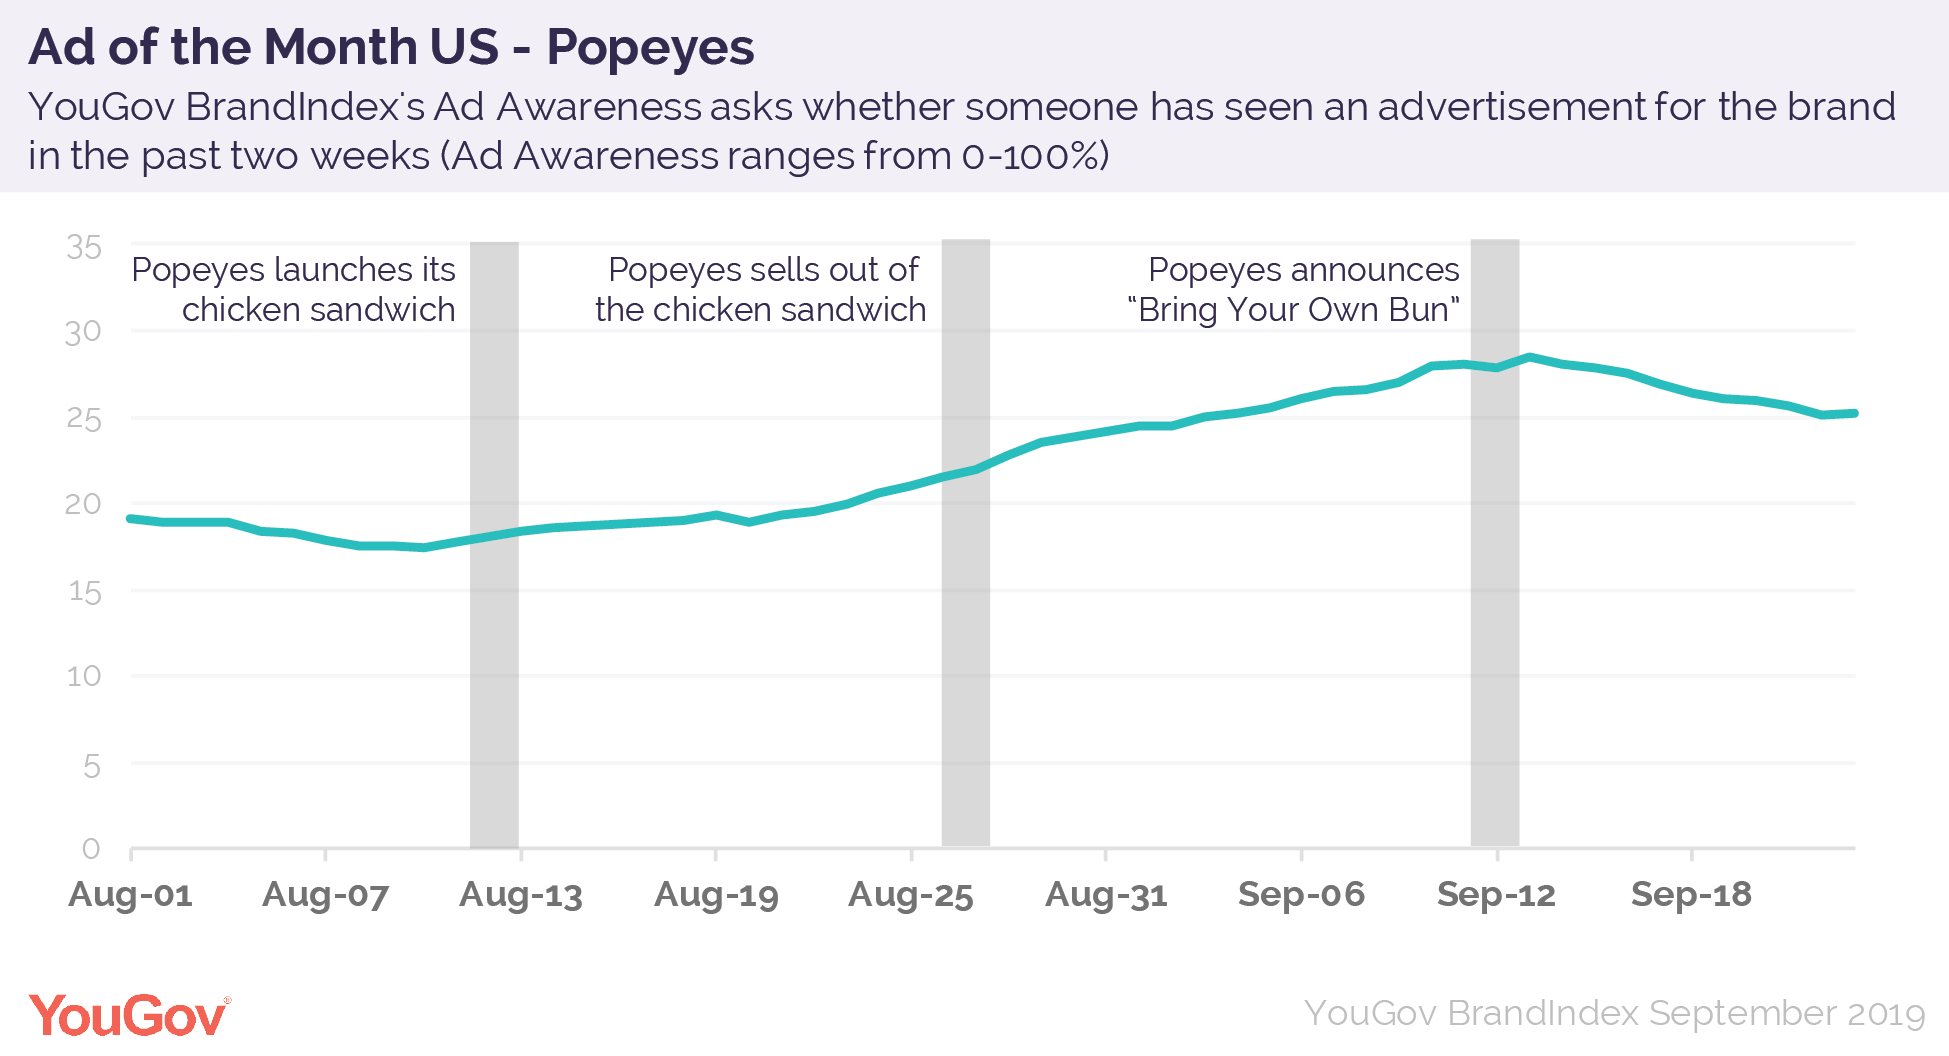 The US Advertisement of the Month: Popeyes